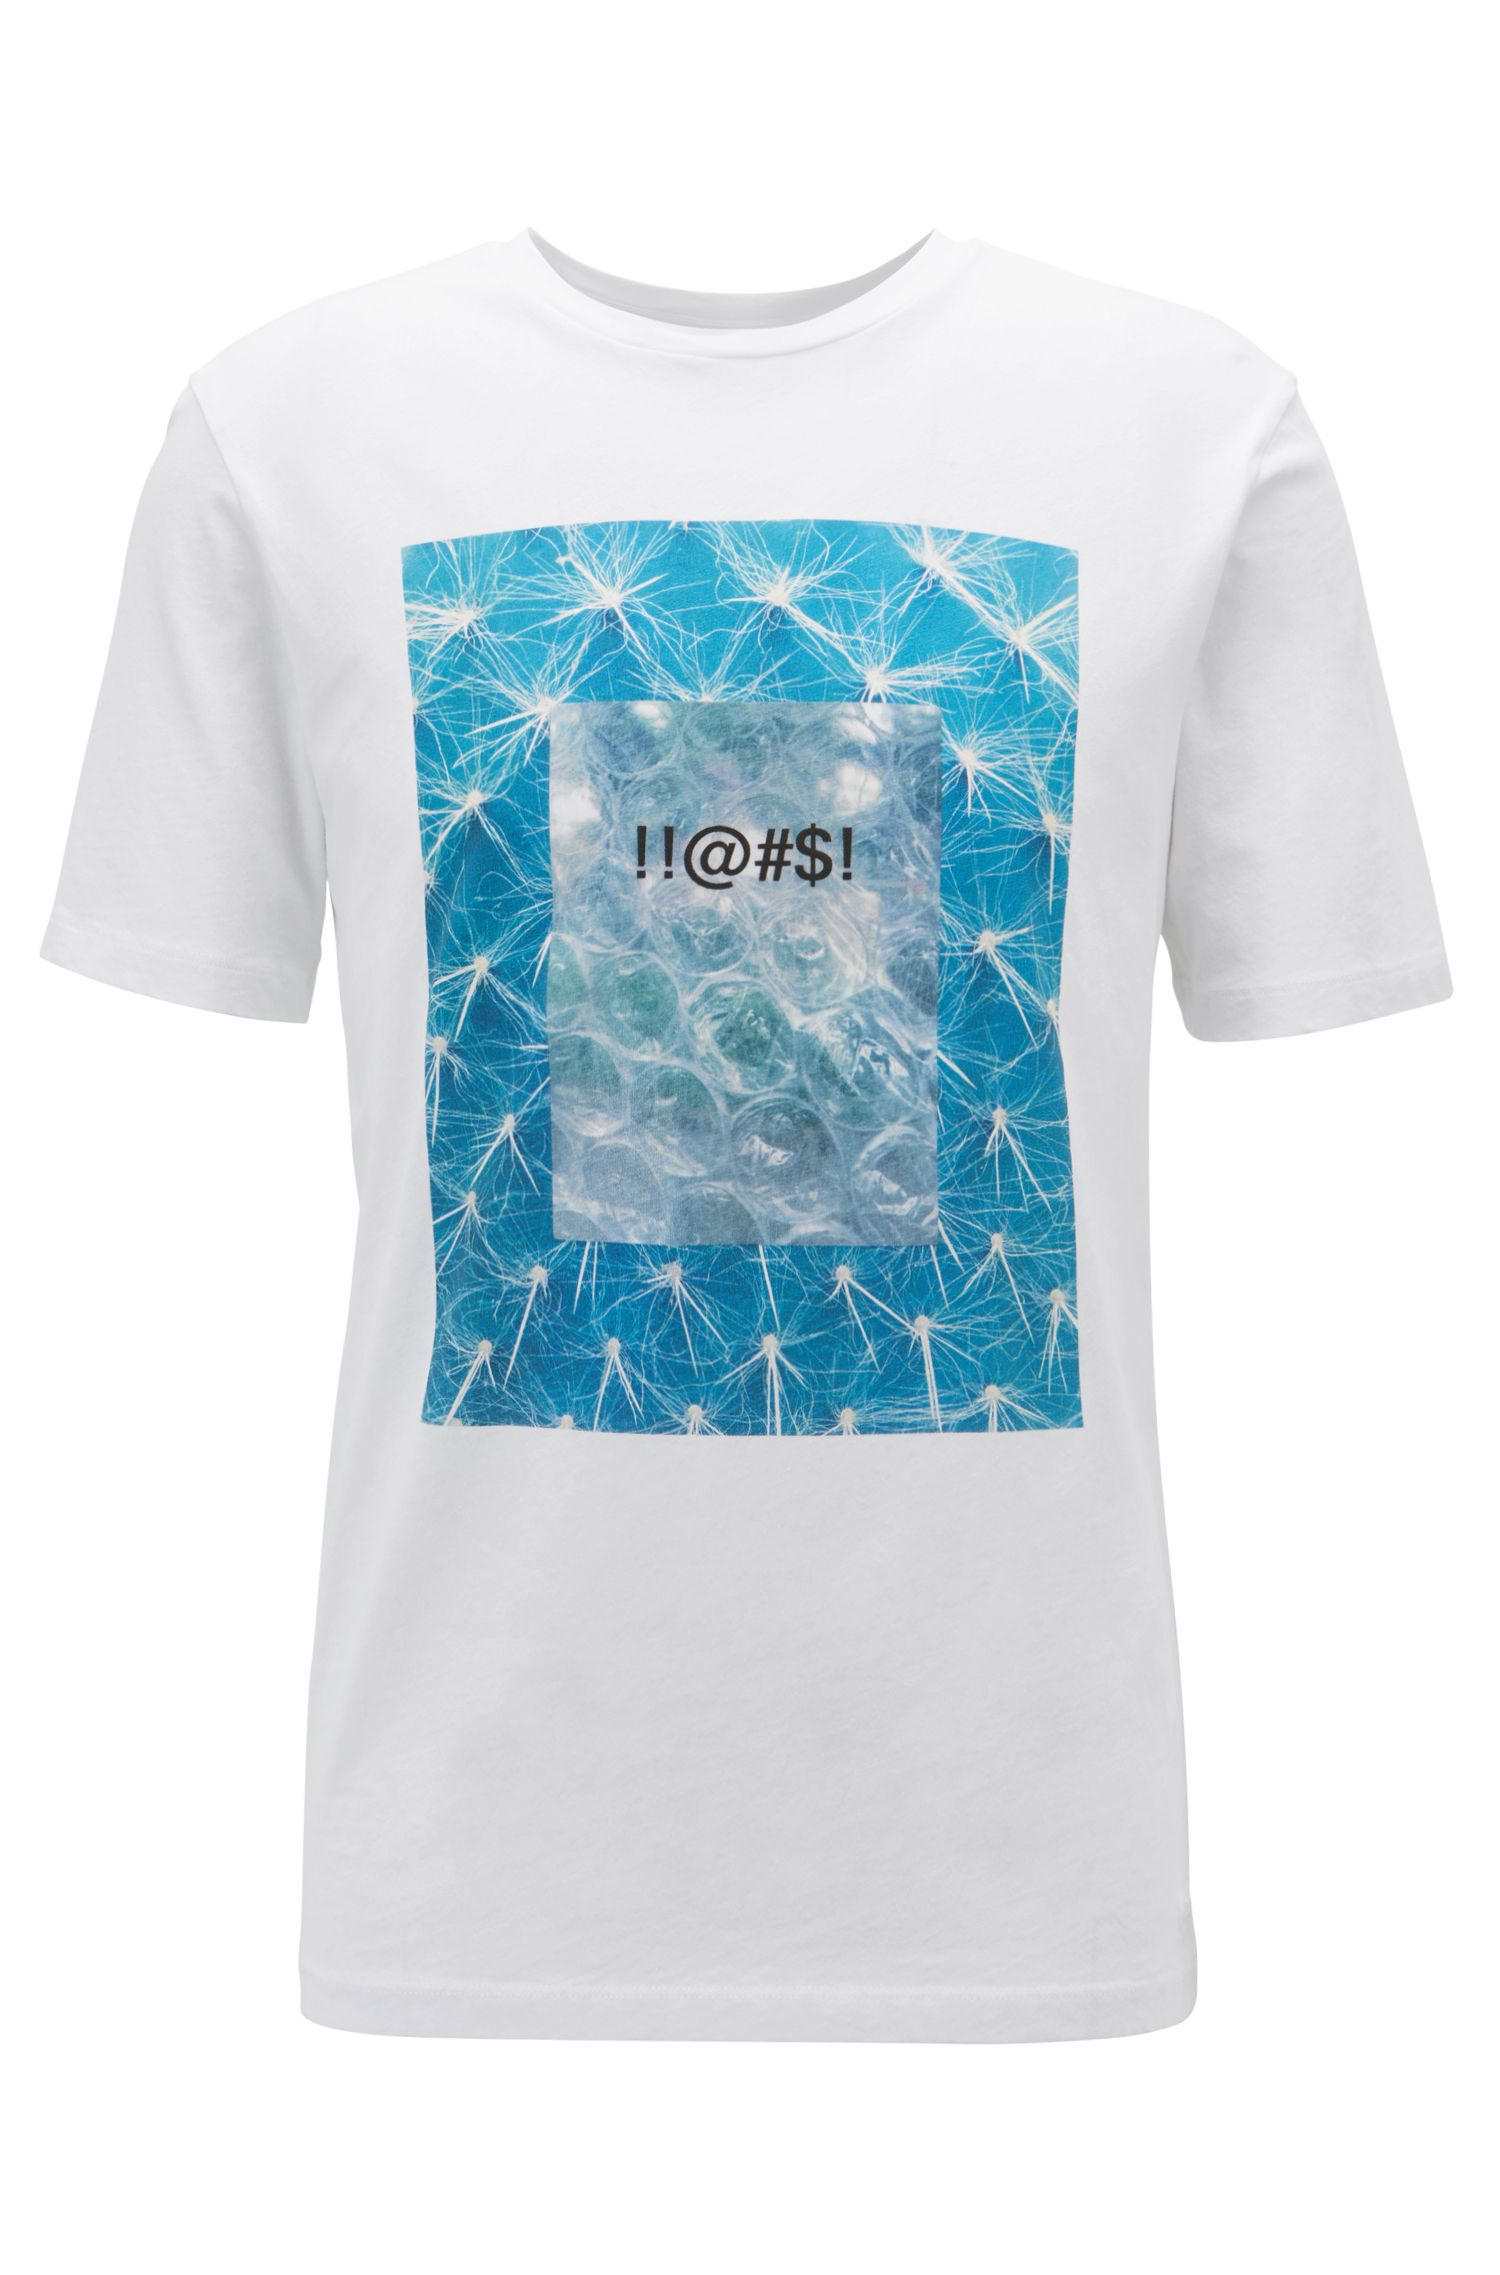 Relaxed-fit slogan T-shirt in eco-friendly recot²® cotton, White